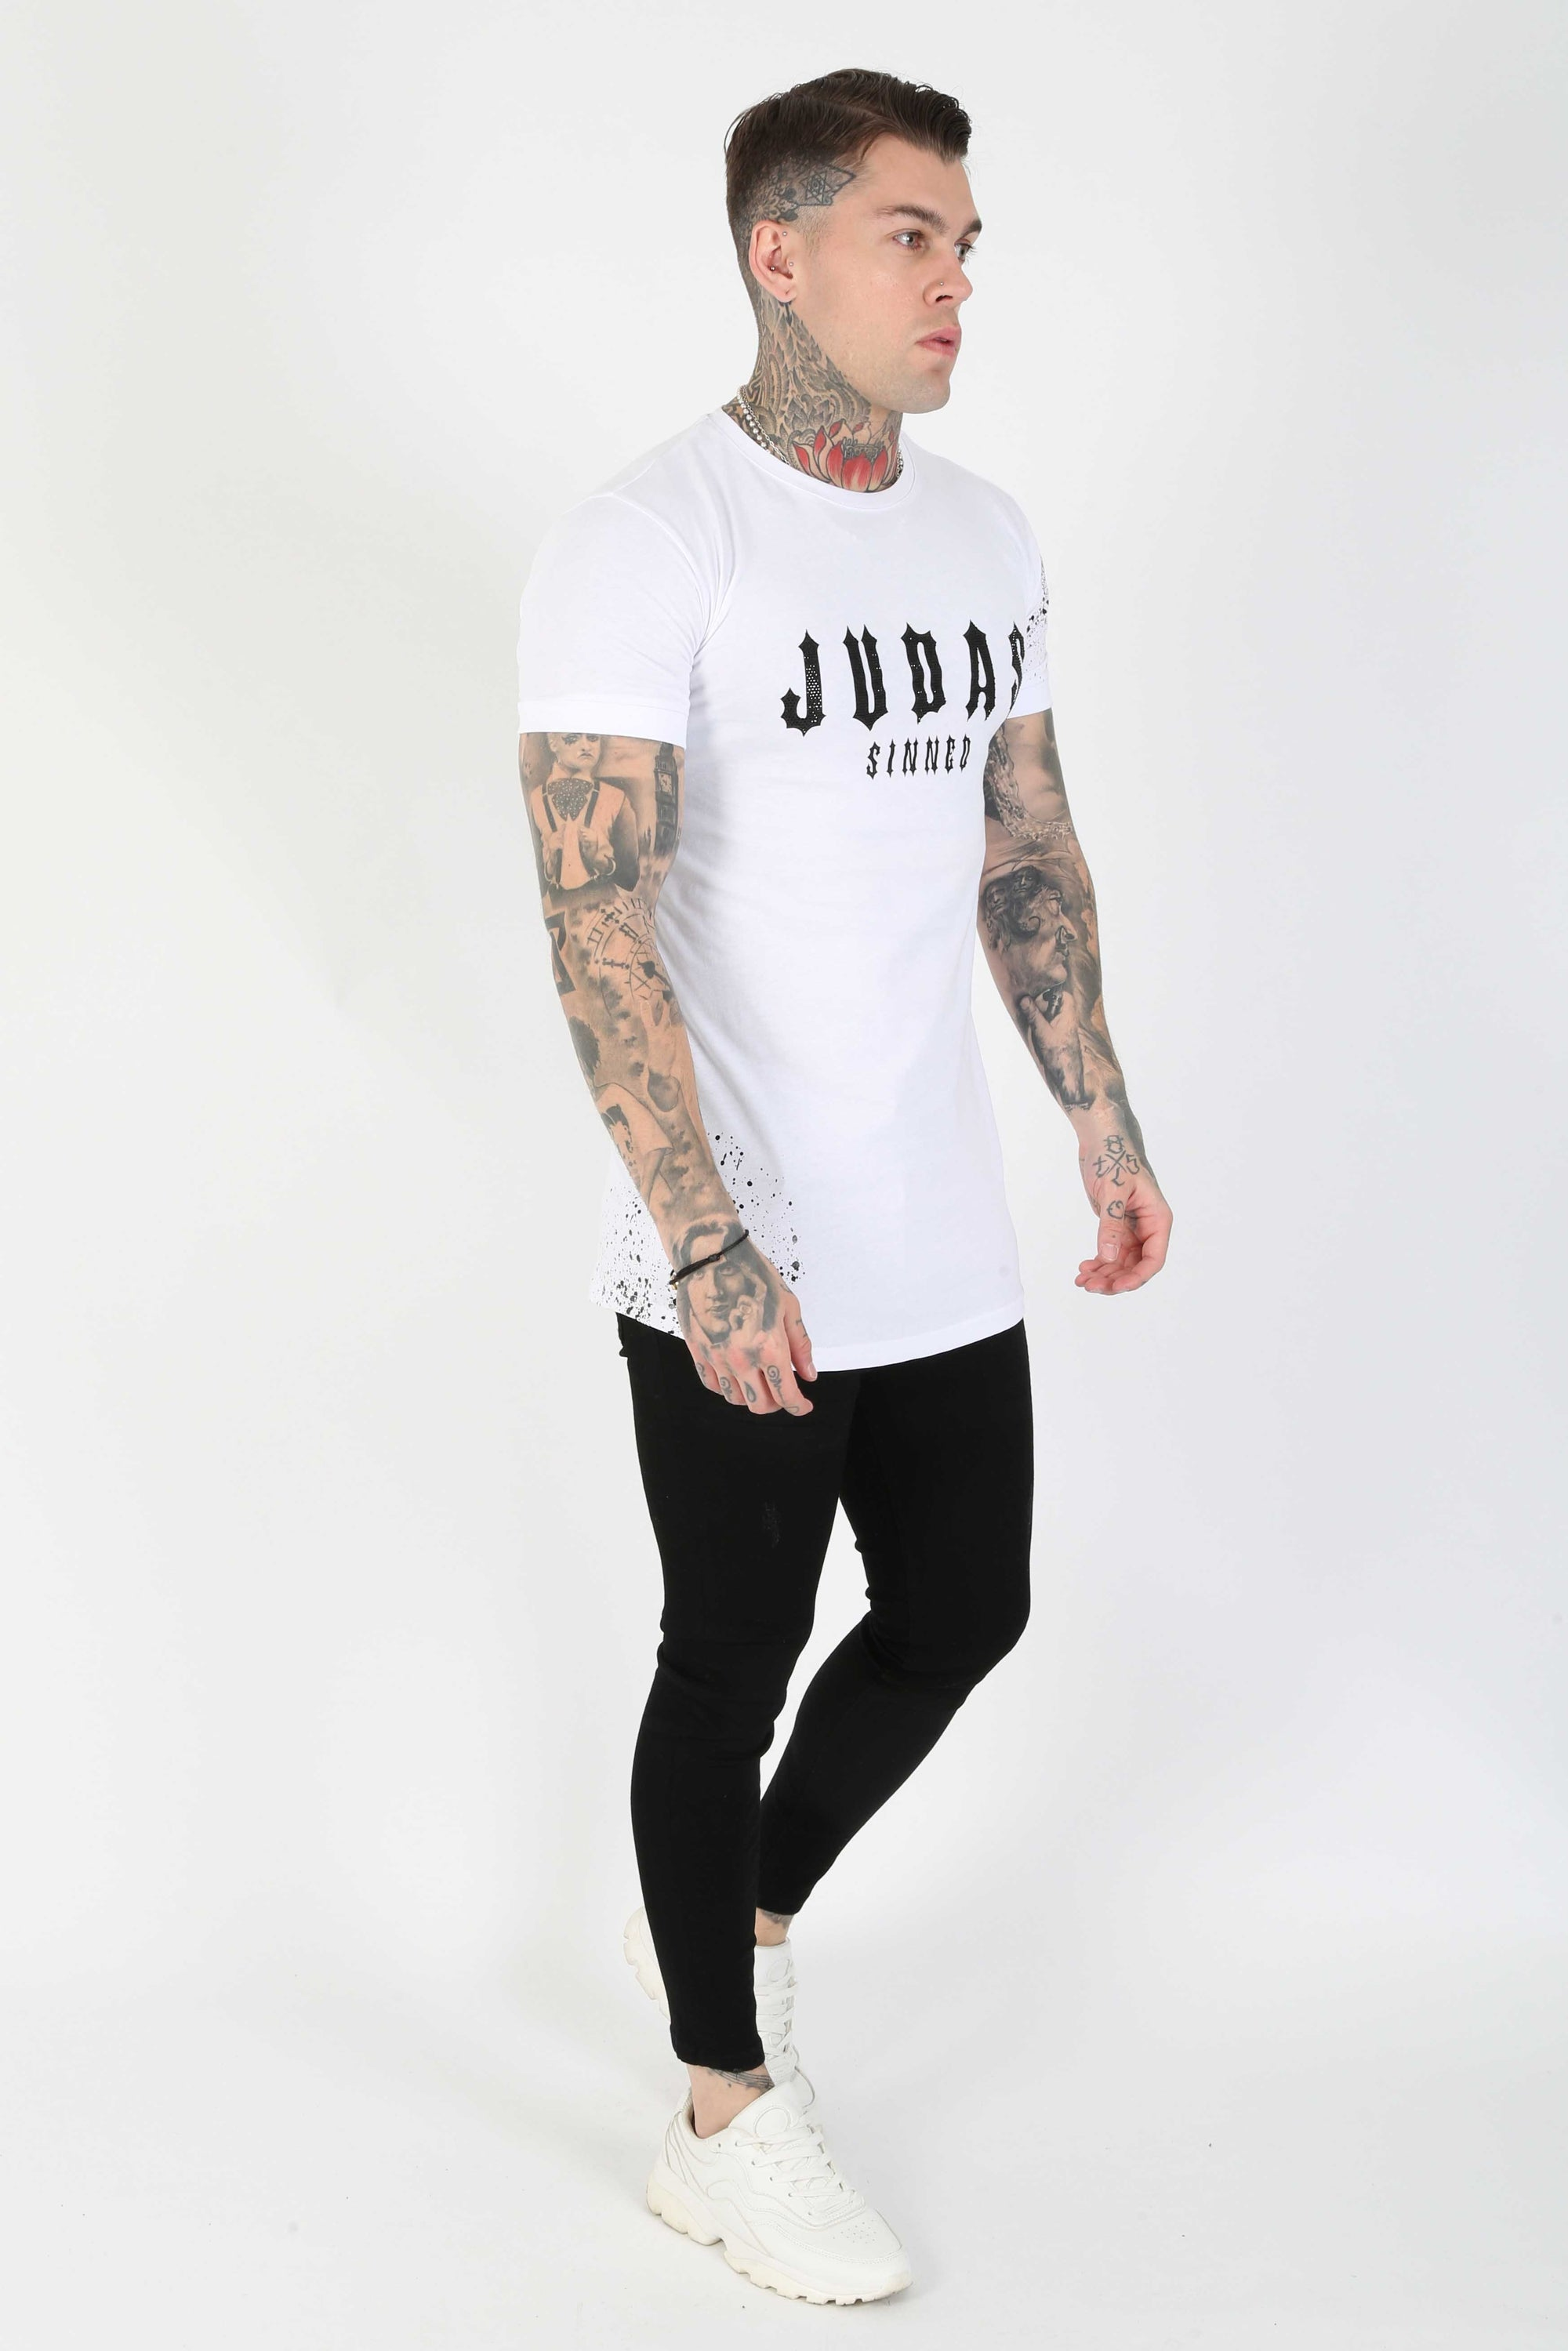 Judas Sinned Neo Crystal Print Men's T-Shirt - White - Judas Sinned Clothing